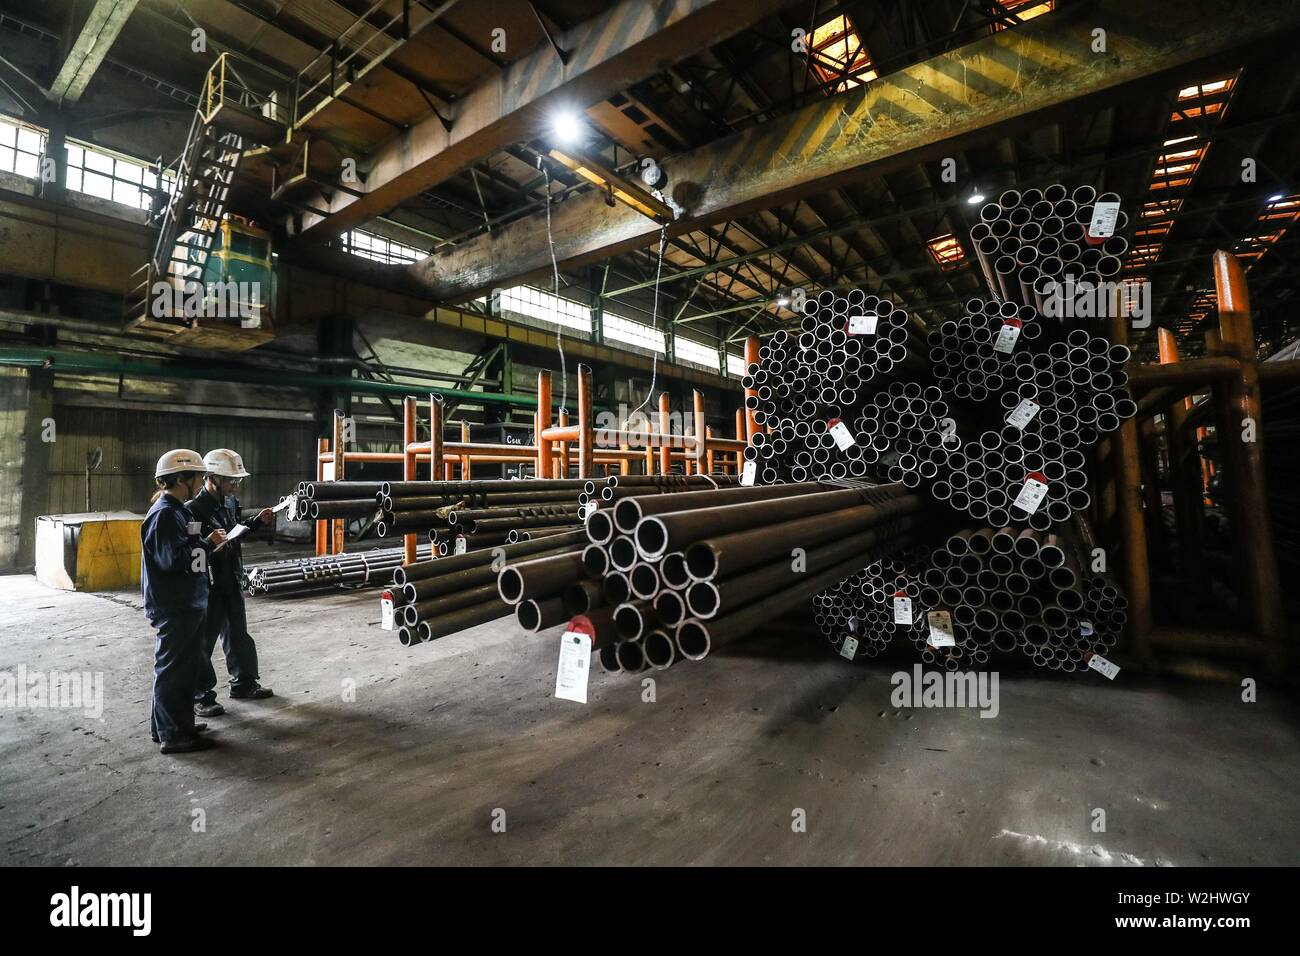 Beijing, China's Liaoning Province. 5th July, 2019. Workers inspect seamless steel tubes at a plant of Ansteel Group Co., Ltd. in Anshan, northeast China's Liaoning Province, July 5, 2019. Credit: Pan Yulong/Xinhua/Alamy Live News - Stock Image